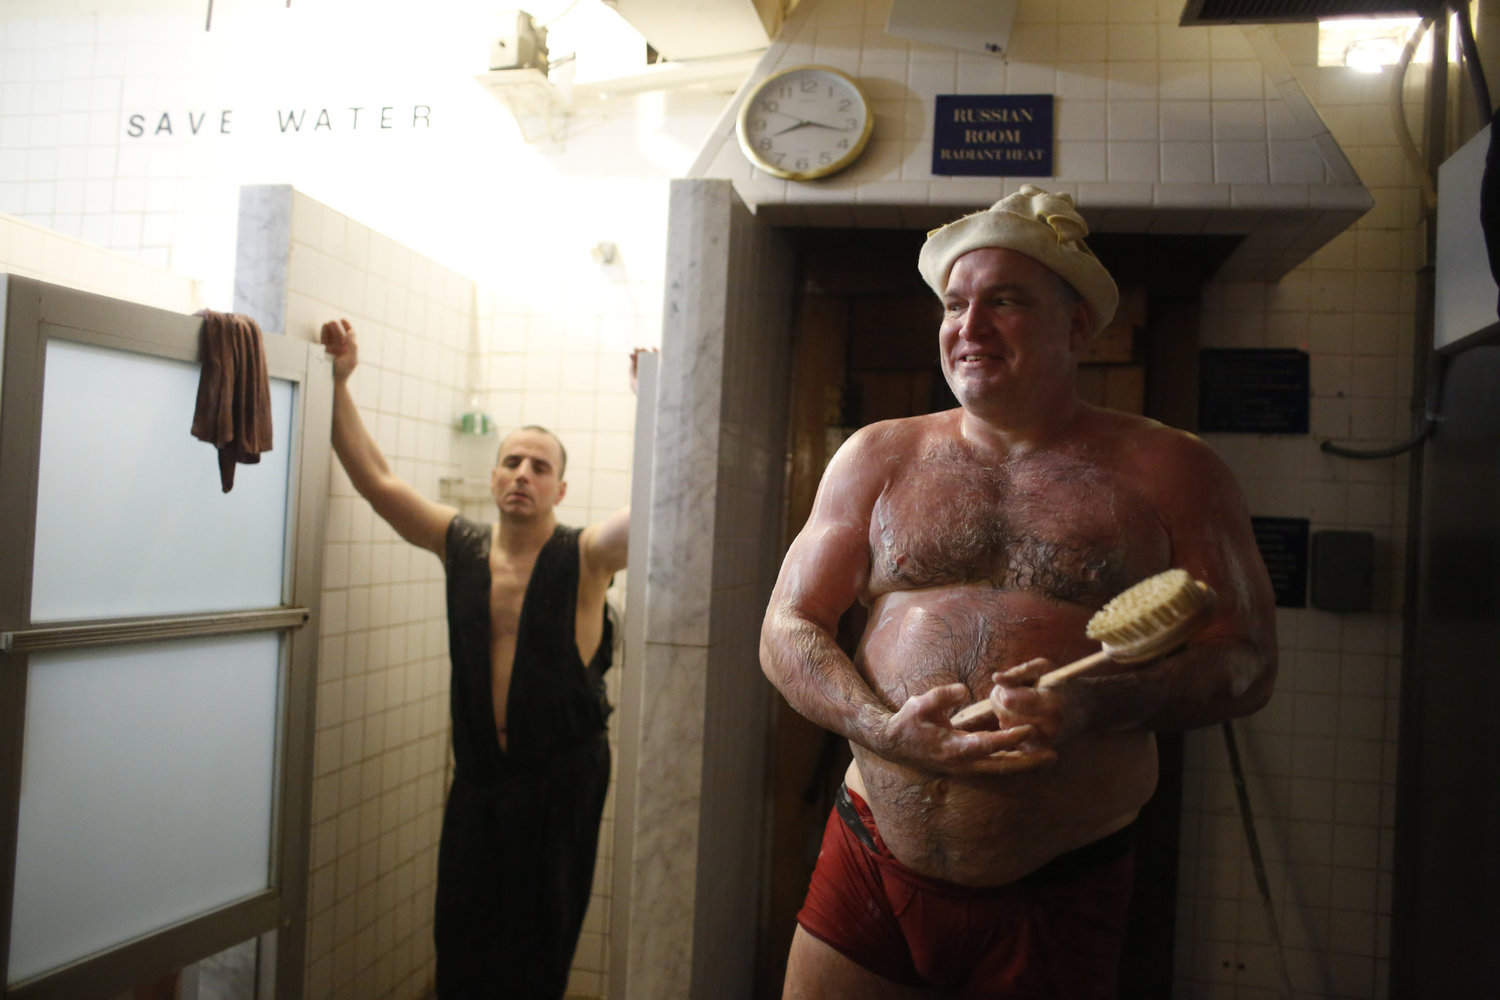 Jim Monahan scrubs down in the showers after time in the searing Russian Room, which is heated to over 190 degrees. Regulars say the saunas are hotter on so-called Boris weeks.